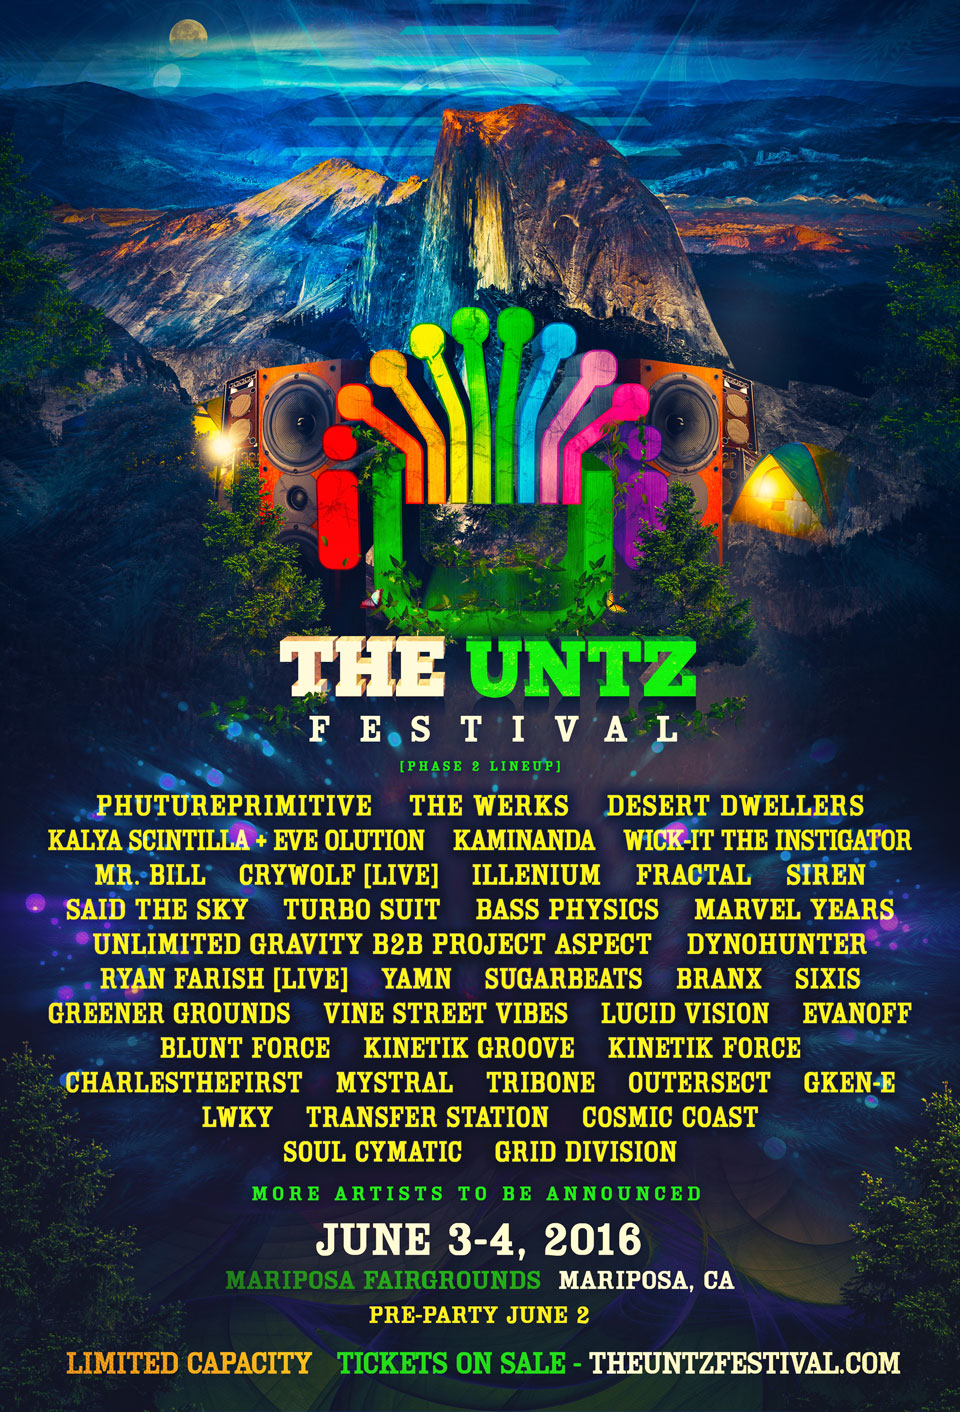 The Untz Festival - Phase 2